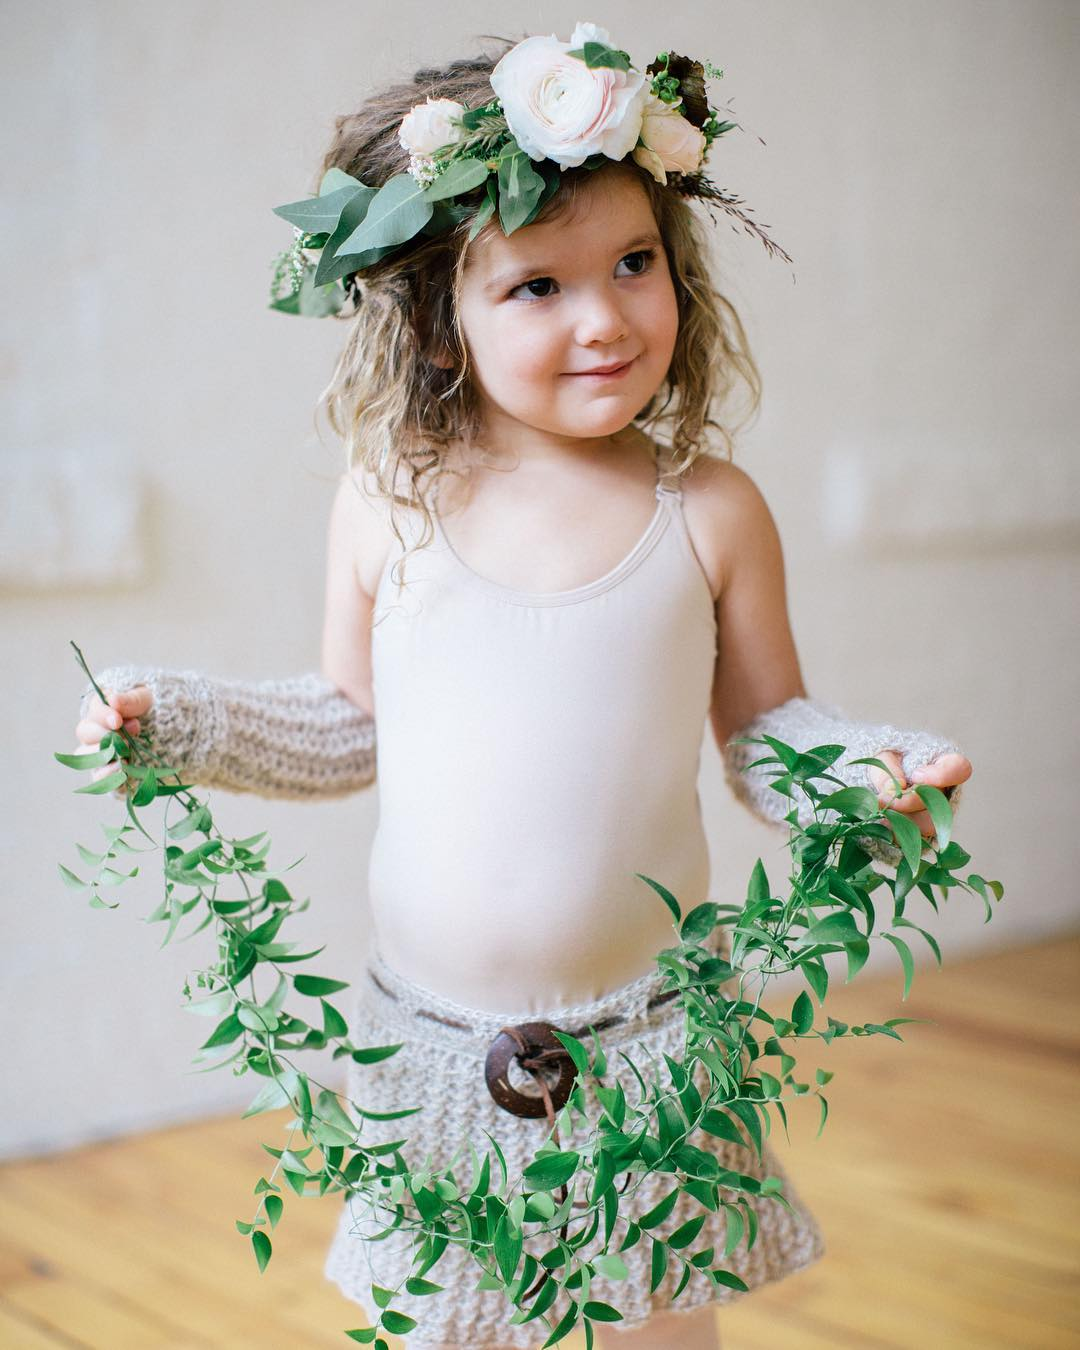 {flower babe} photo | @kate_preftakes  styling/coordination | @eventsbysorrell . . #flowergirl #flowerchild #bohobabe #smilax #flowercrown #ecochic #styledshoot #nhmagazinebride #collaboration #love #lotusfloraldesigns #weddingdesign #prettyflowers